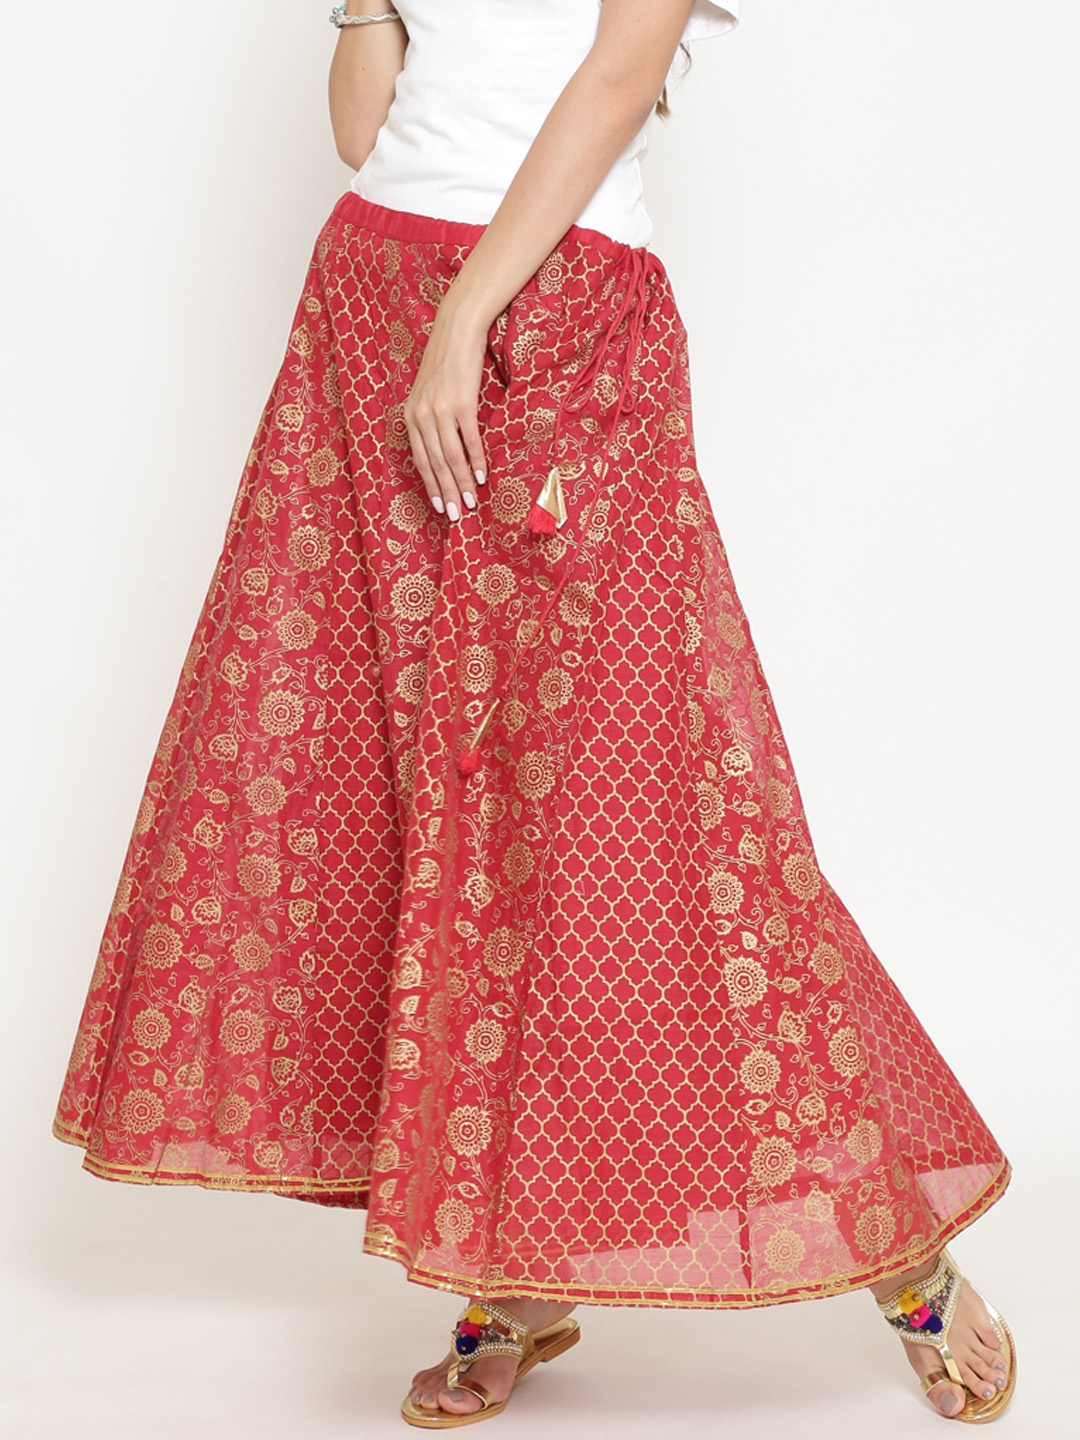 8e50a1bf6 Buy Rangriti Red & Golden Printed Flared Maxi Skirt - Skirts for ...